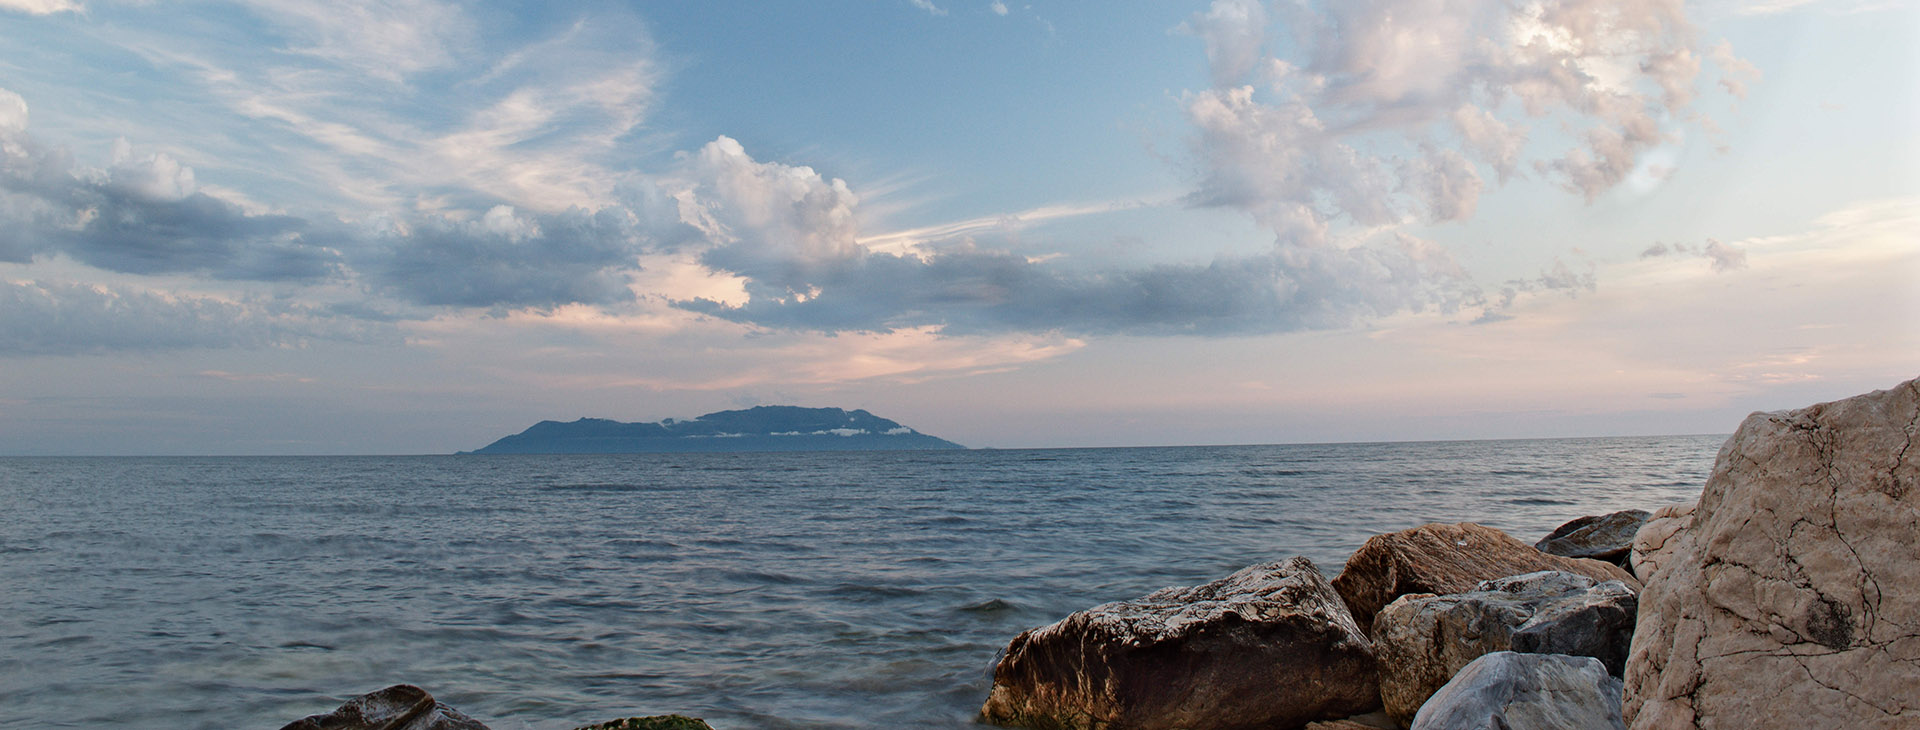 View of Samothrace island from Alexandroupolis coast